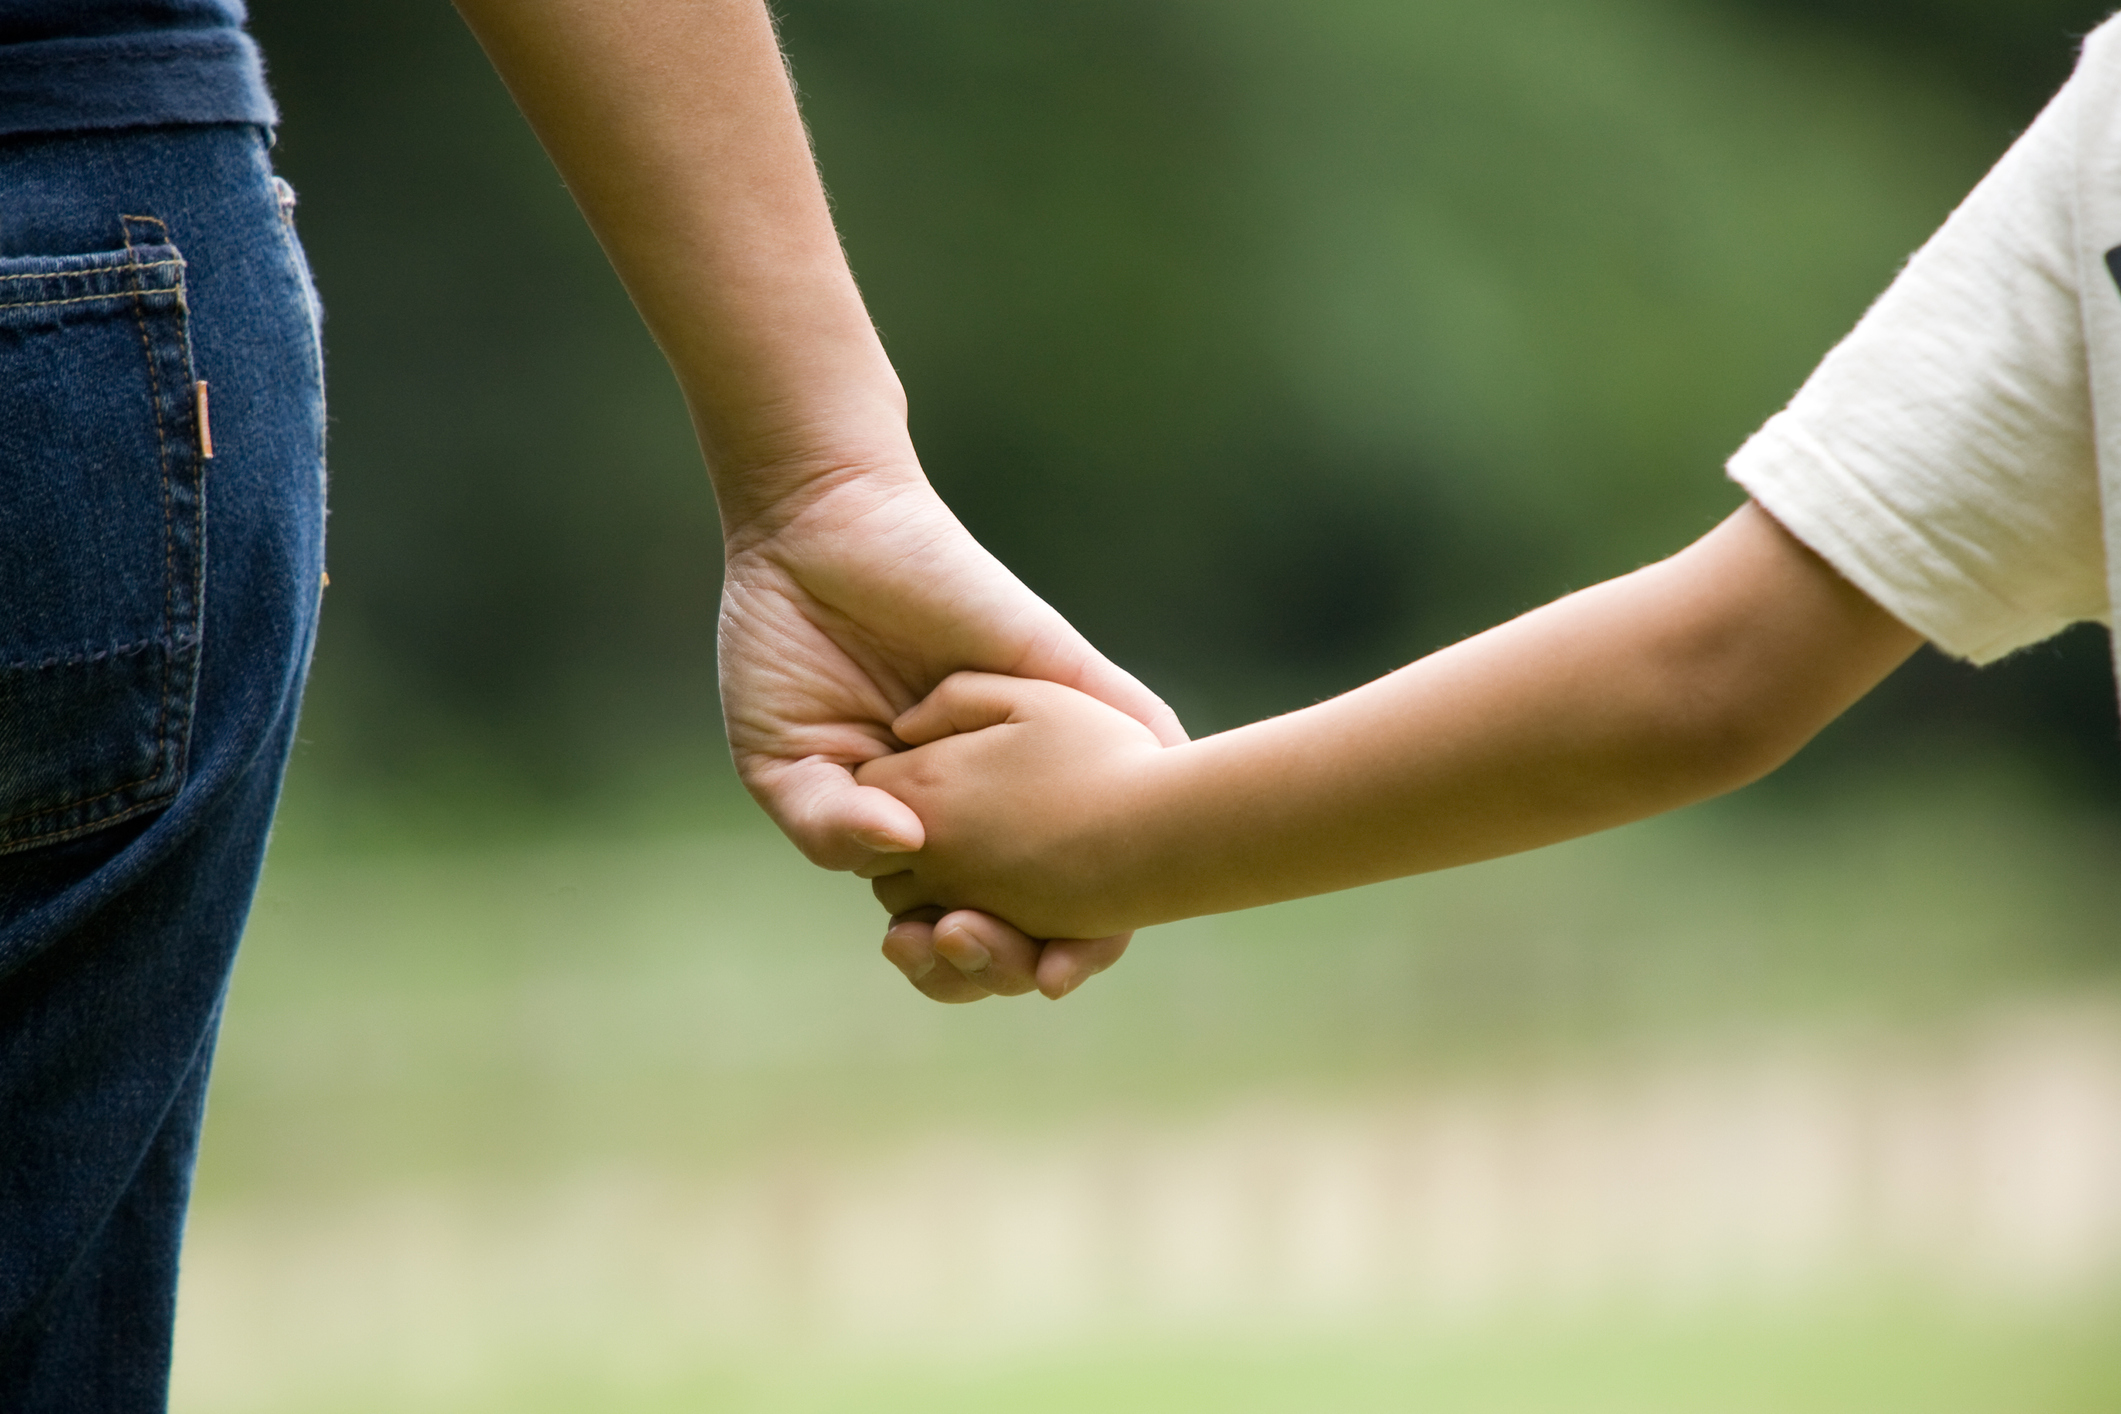 Child Custody Lawyers, Greenville, SC